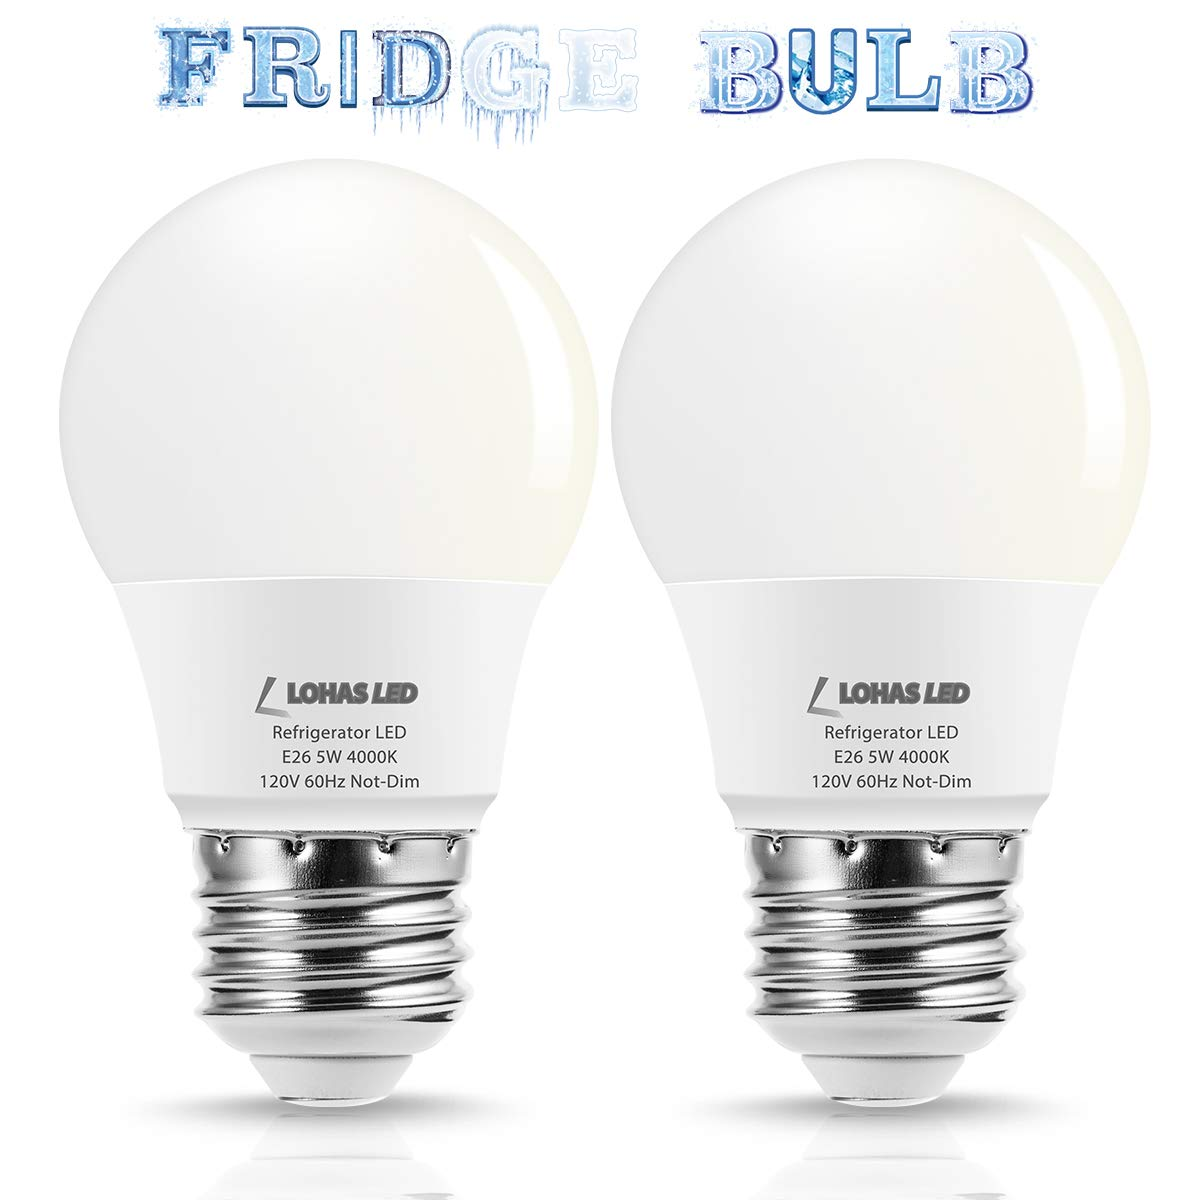 LOHAS Refrigerator Light Bulb LED A15, 40W Equivalent Freezer Light E26 Base, Natural White 4000K, 5Watt Waterproof Bulbs Small, 120V Energy Saving Ceiling Fan Home Lighting(2 Pack)